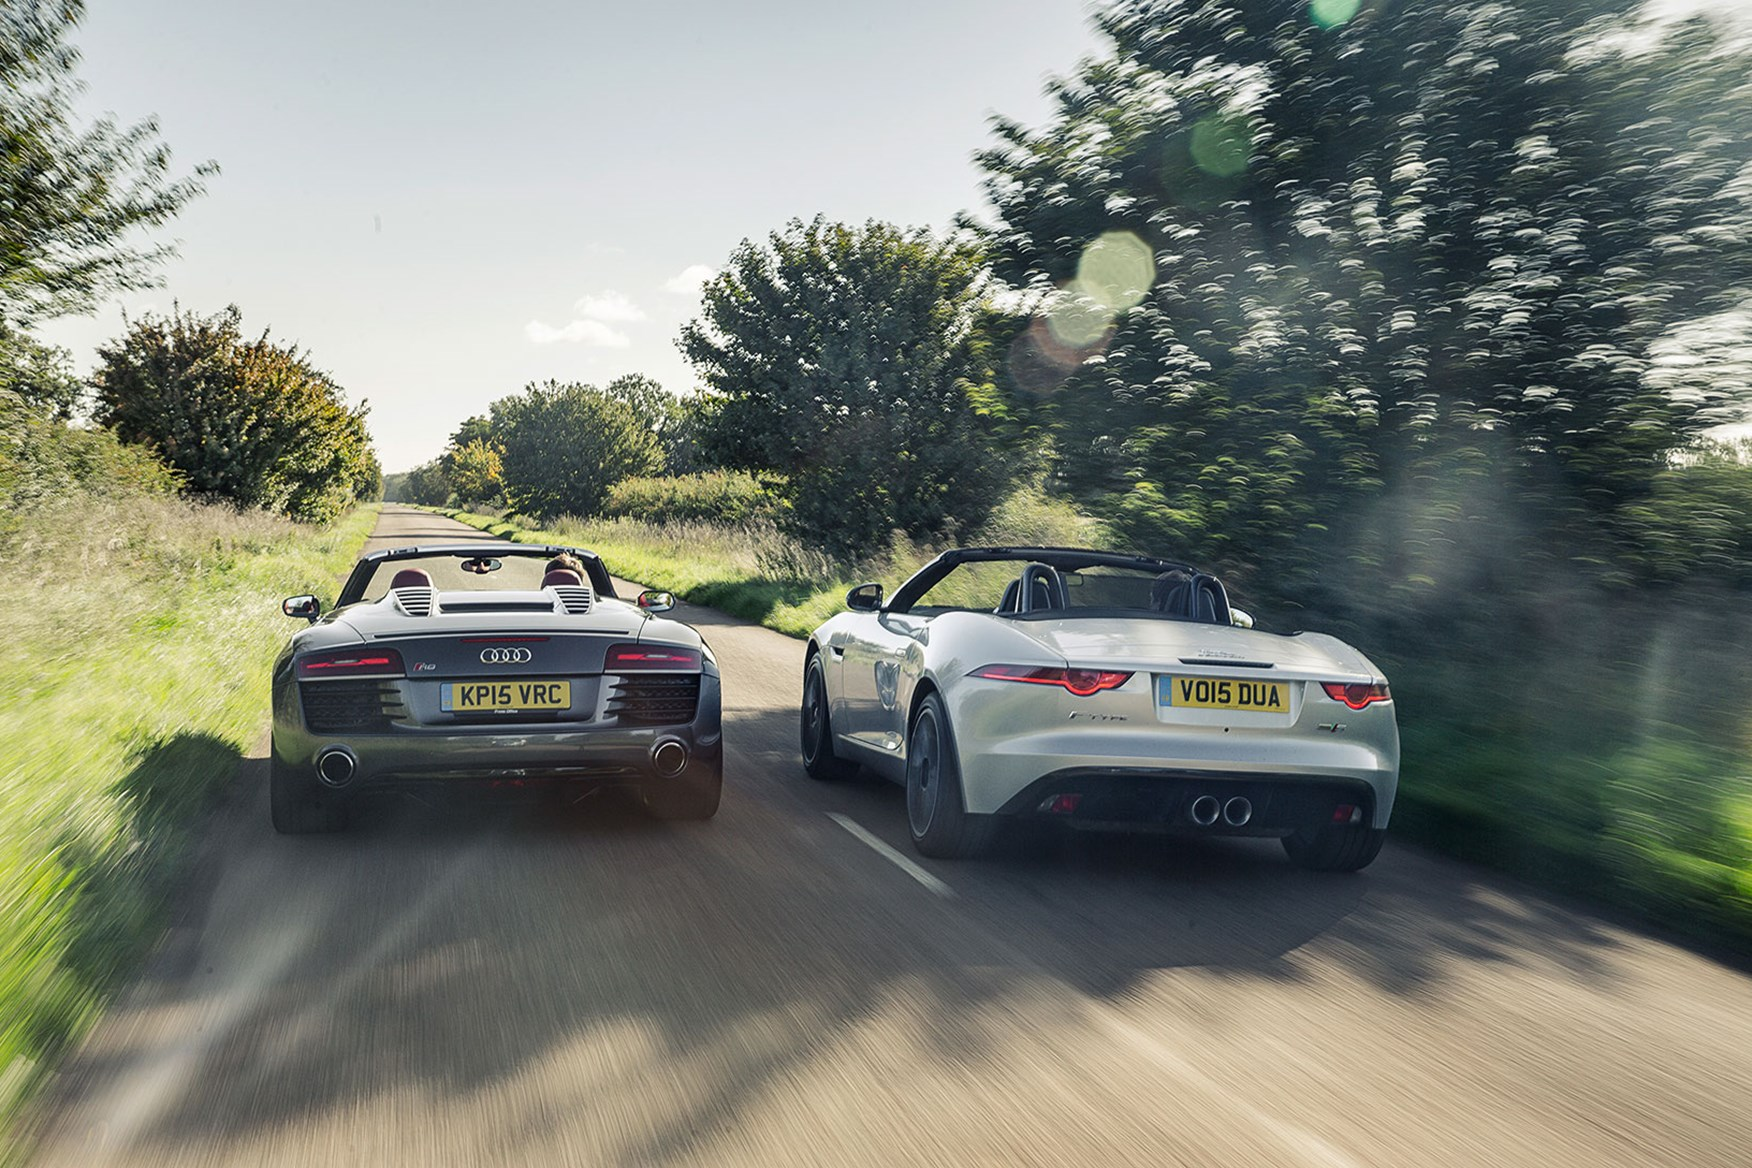 hight resolution of jag looks bigger on the road and is indeed longer and taller but r8